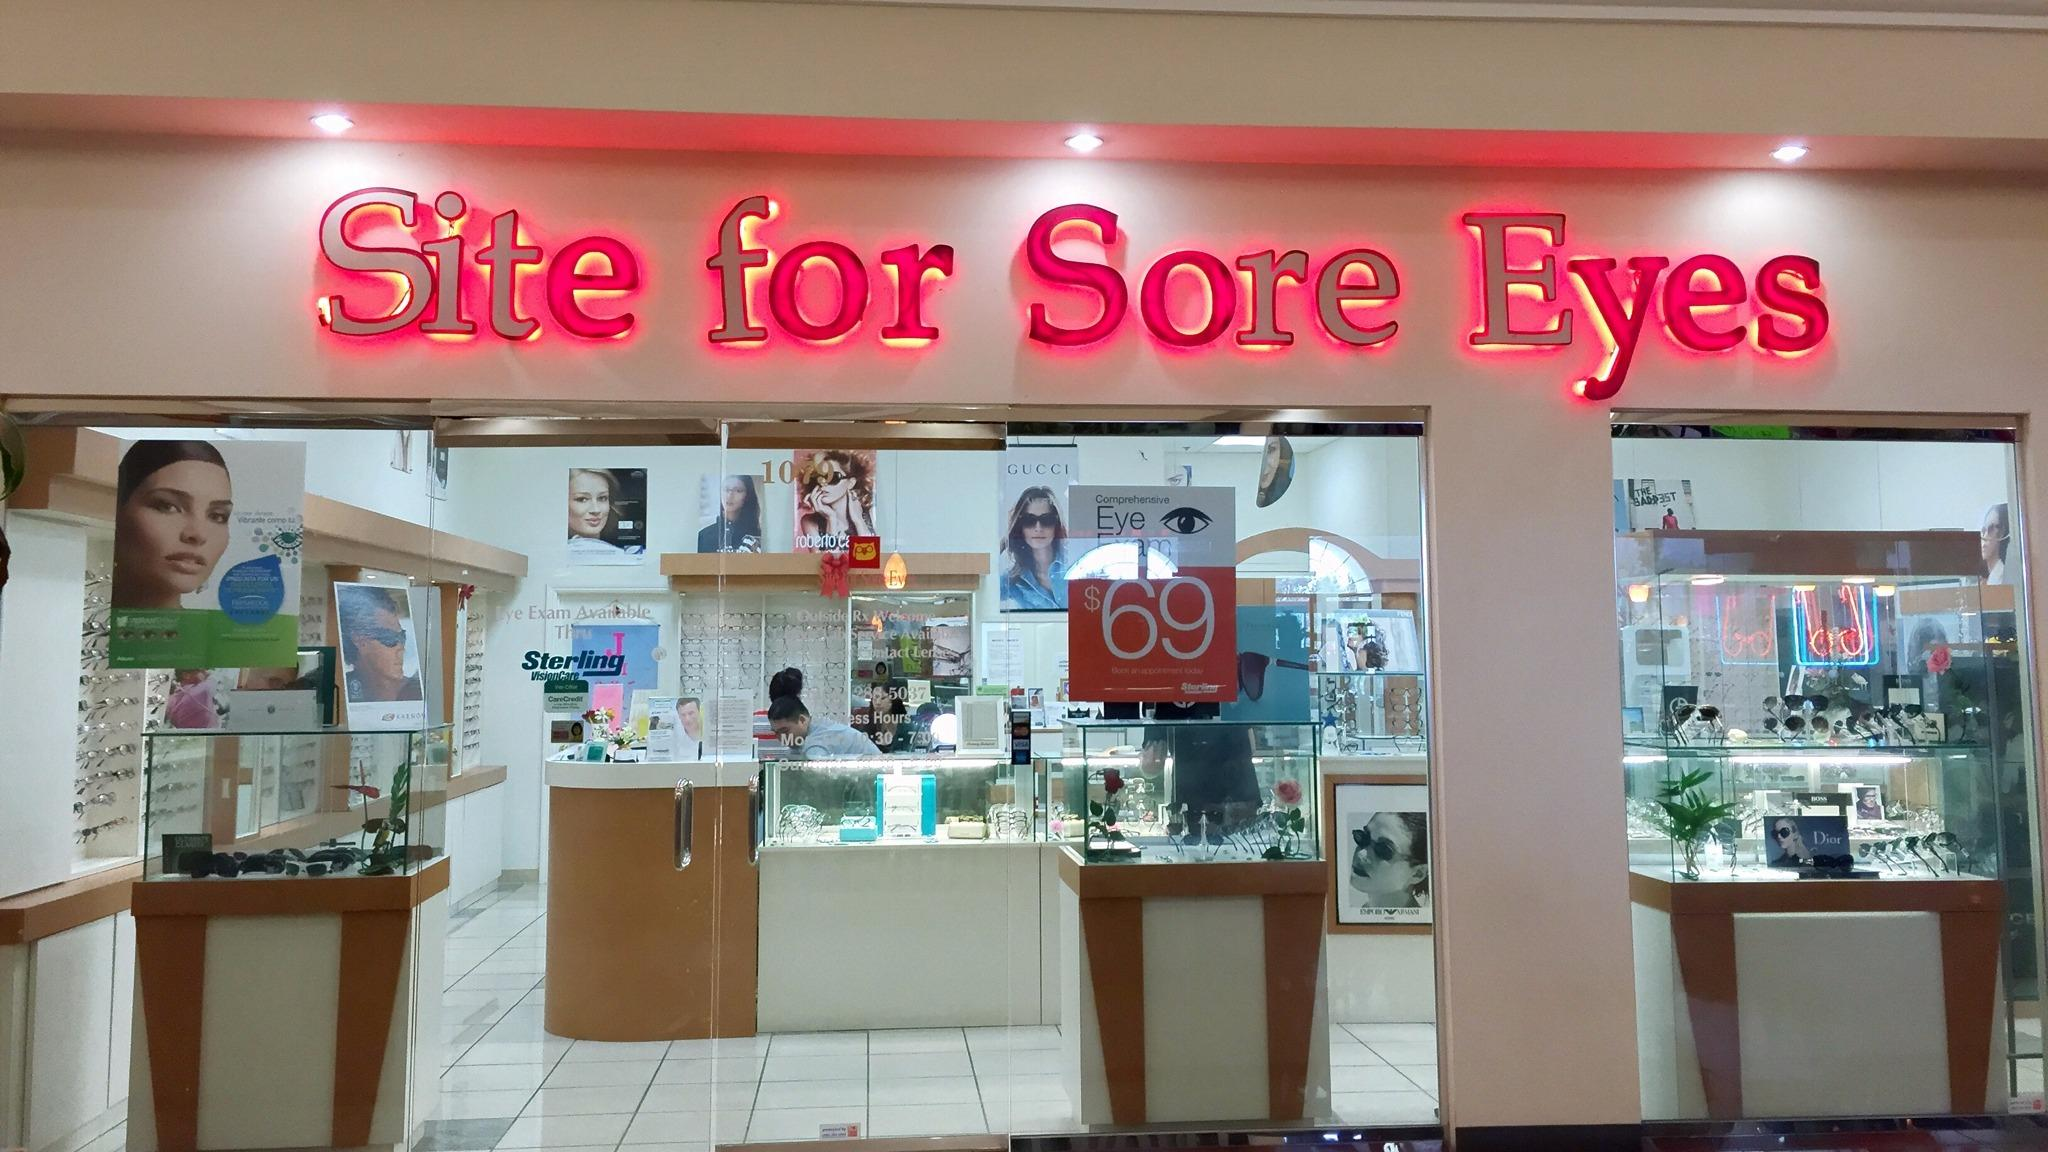 Site for Sore Eyes image 0